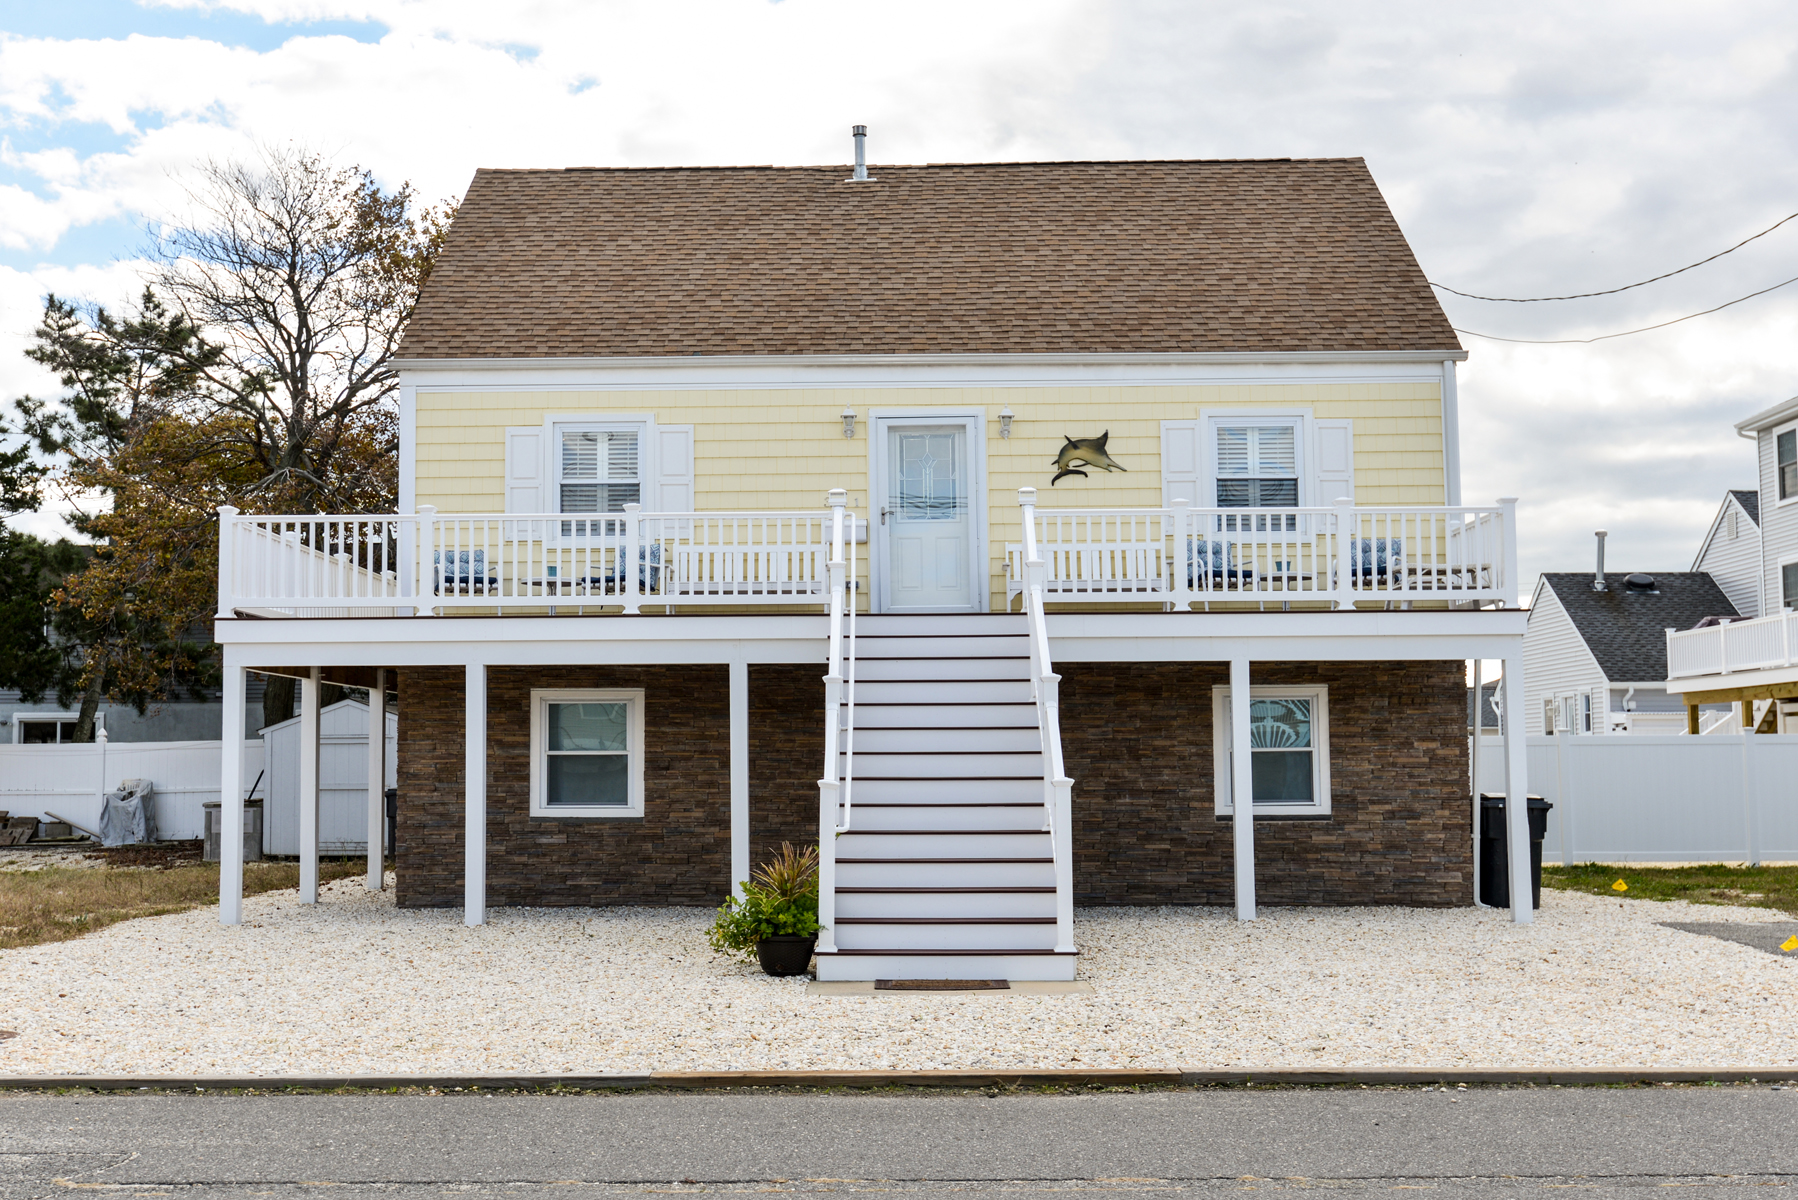 Single Family Home for Sale at Beautiful Raised Cape! 321 Fielder Avenue Toms River, 08751 United States